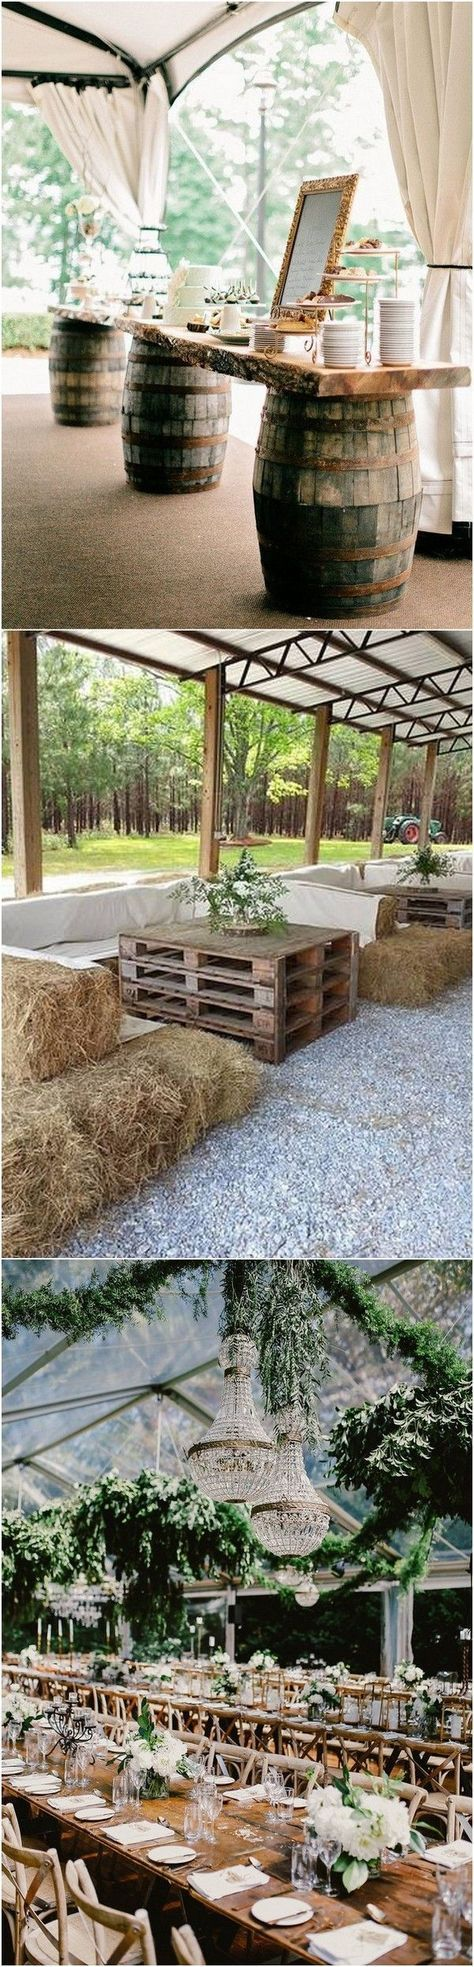 country rustic tented wedding reception ideas... like the second pic